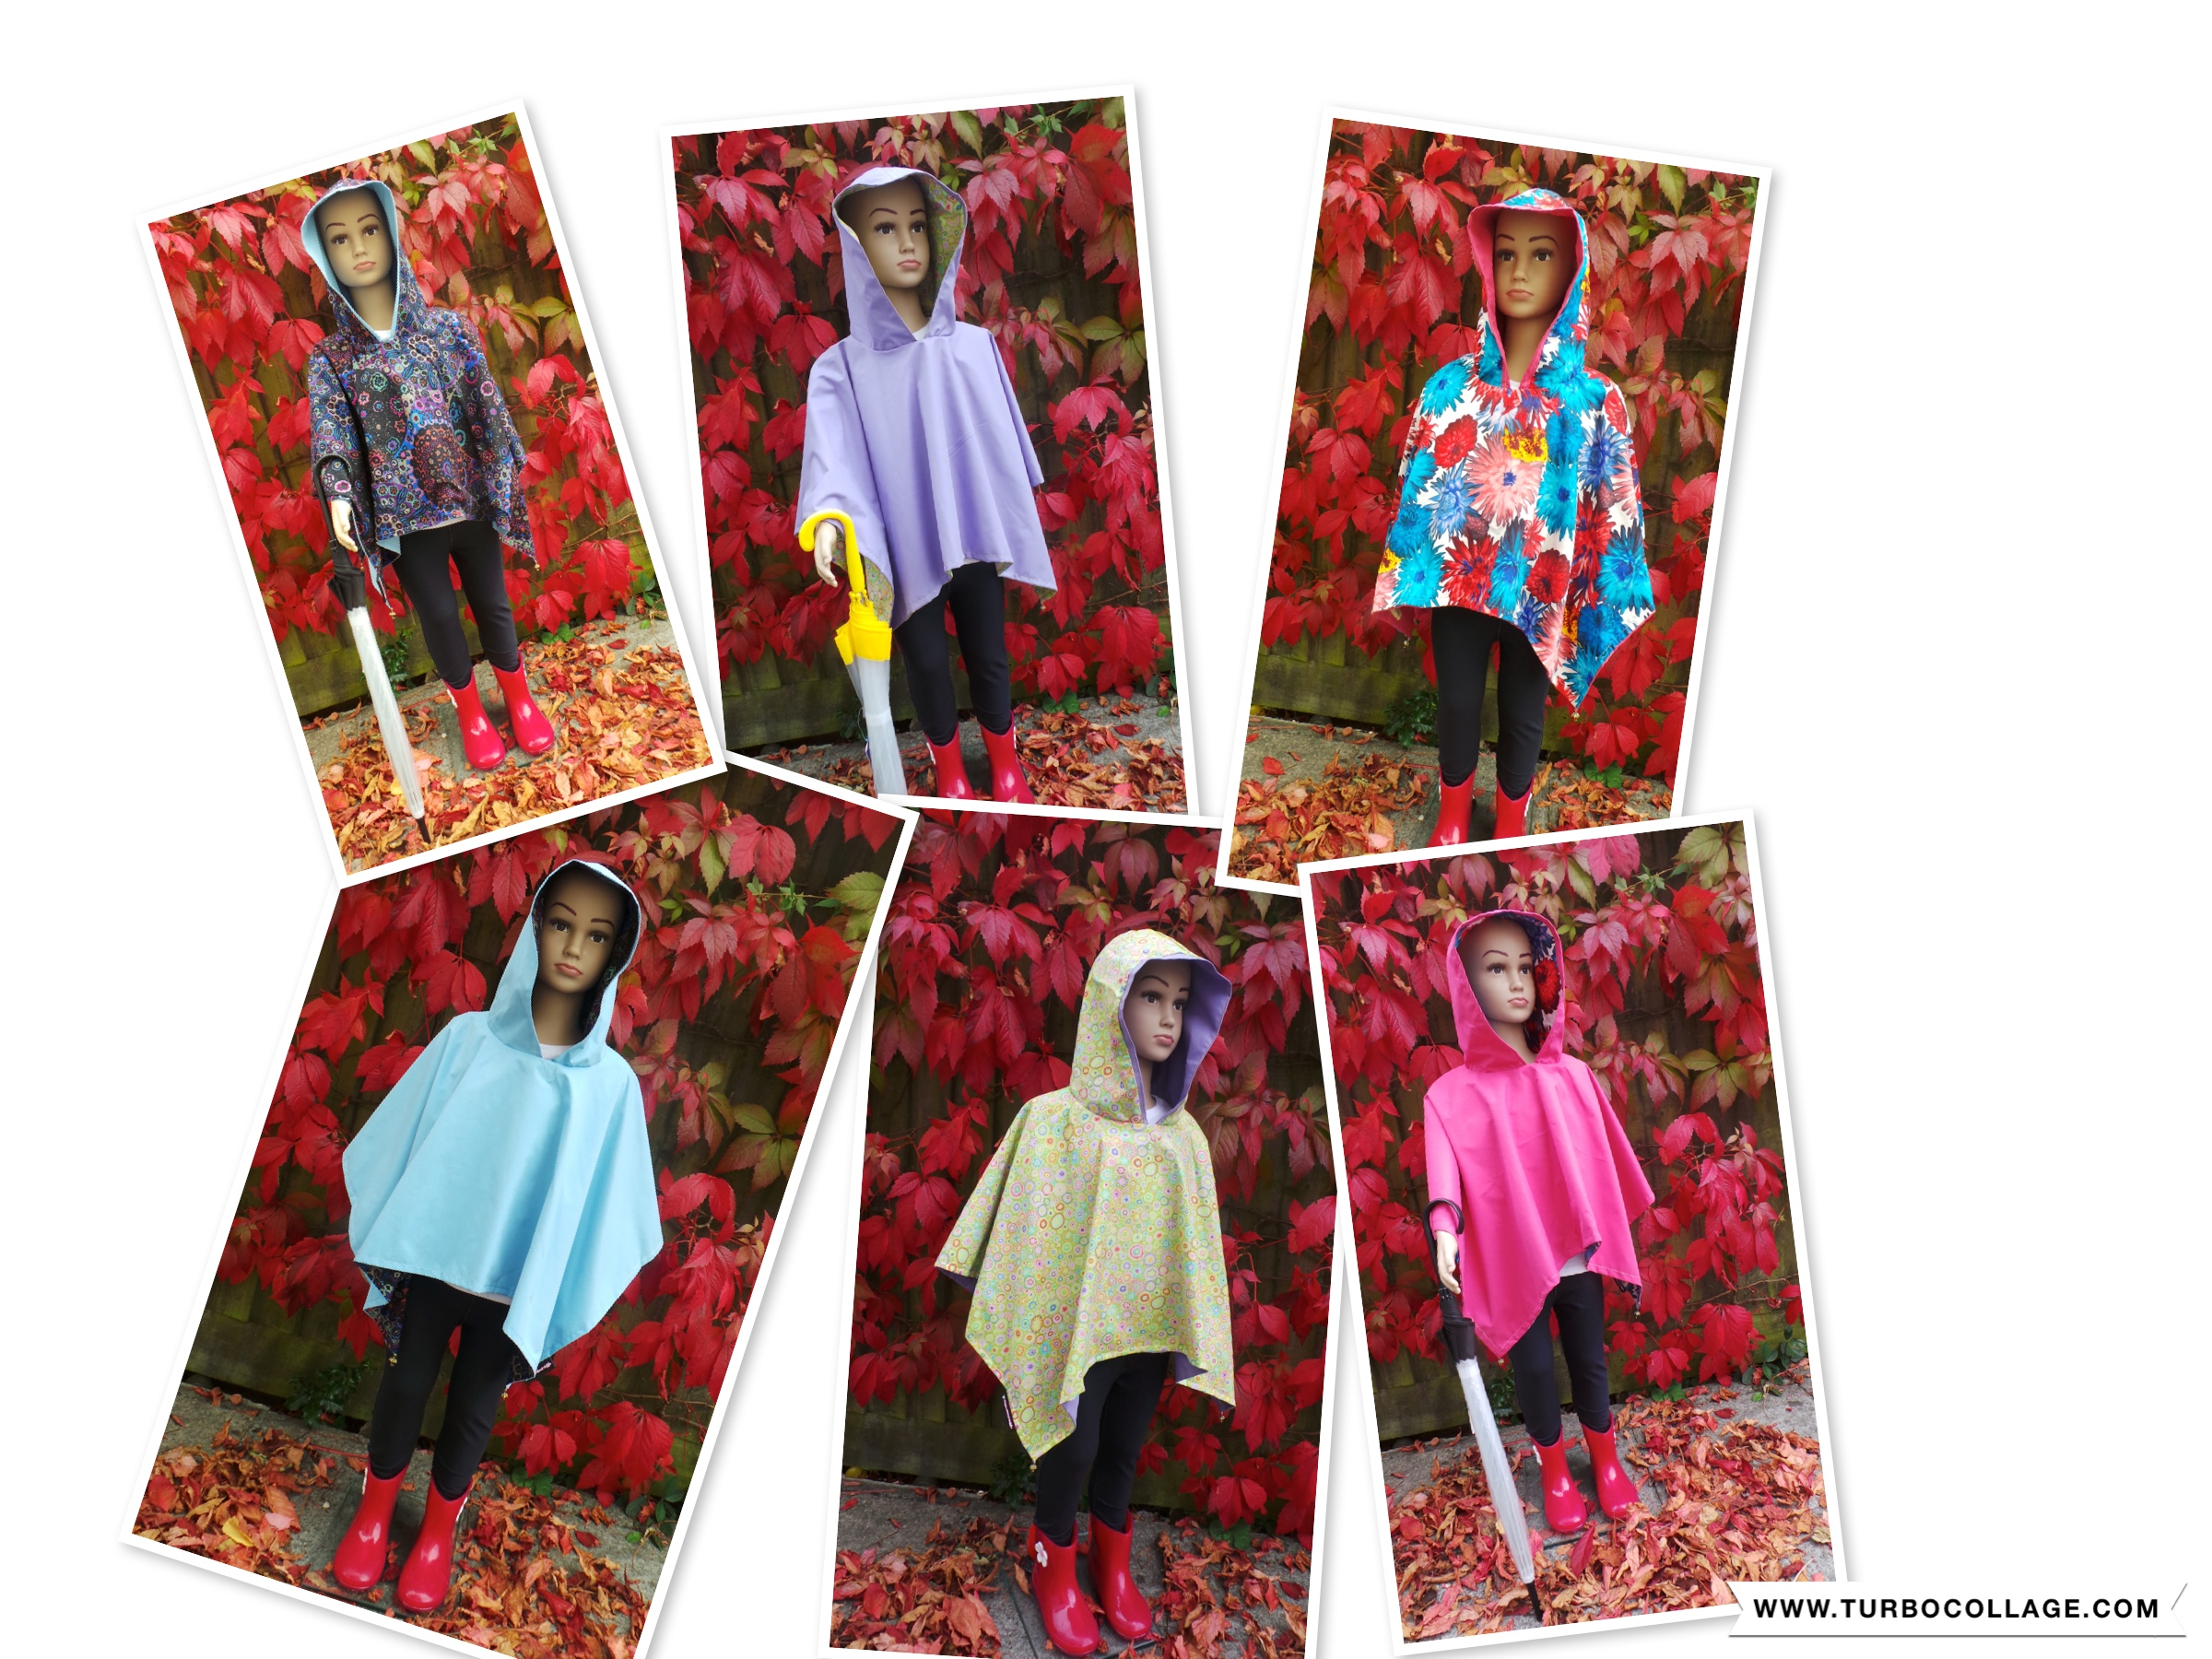 Poncho Fashion – A Guide To Choosing The Latests Styles For Girls This Autumn.